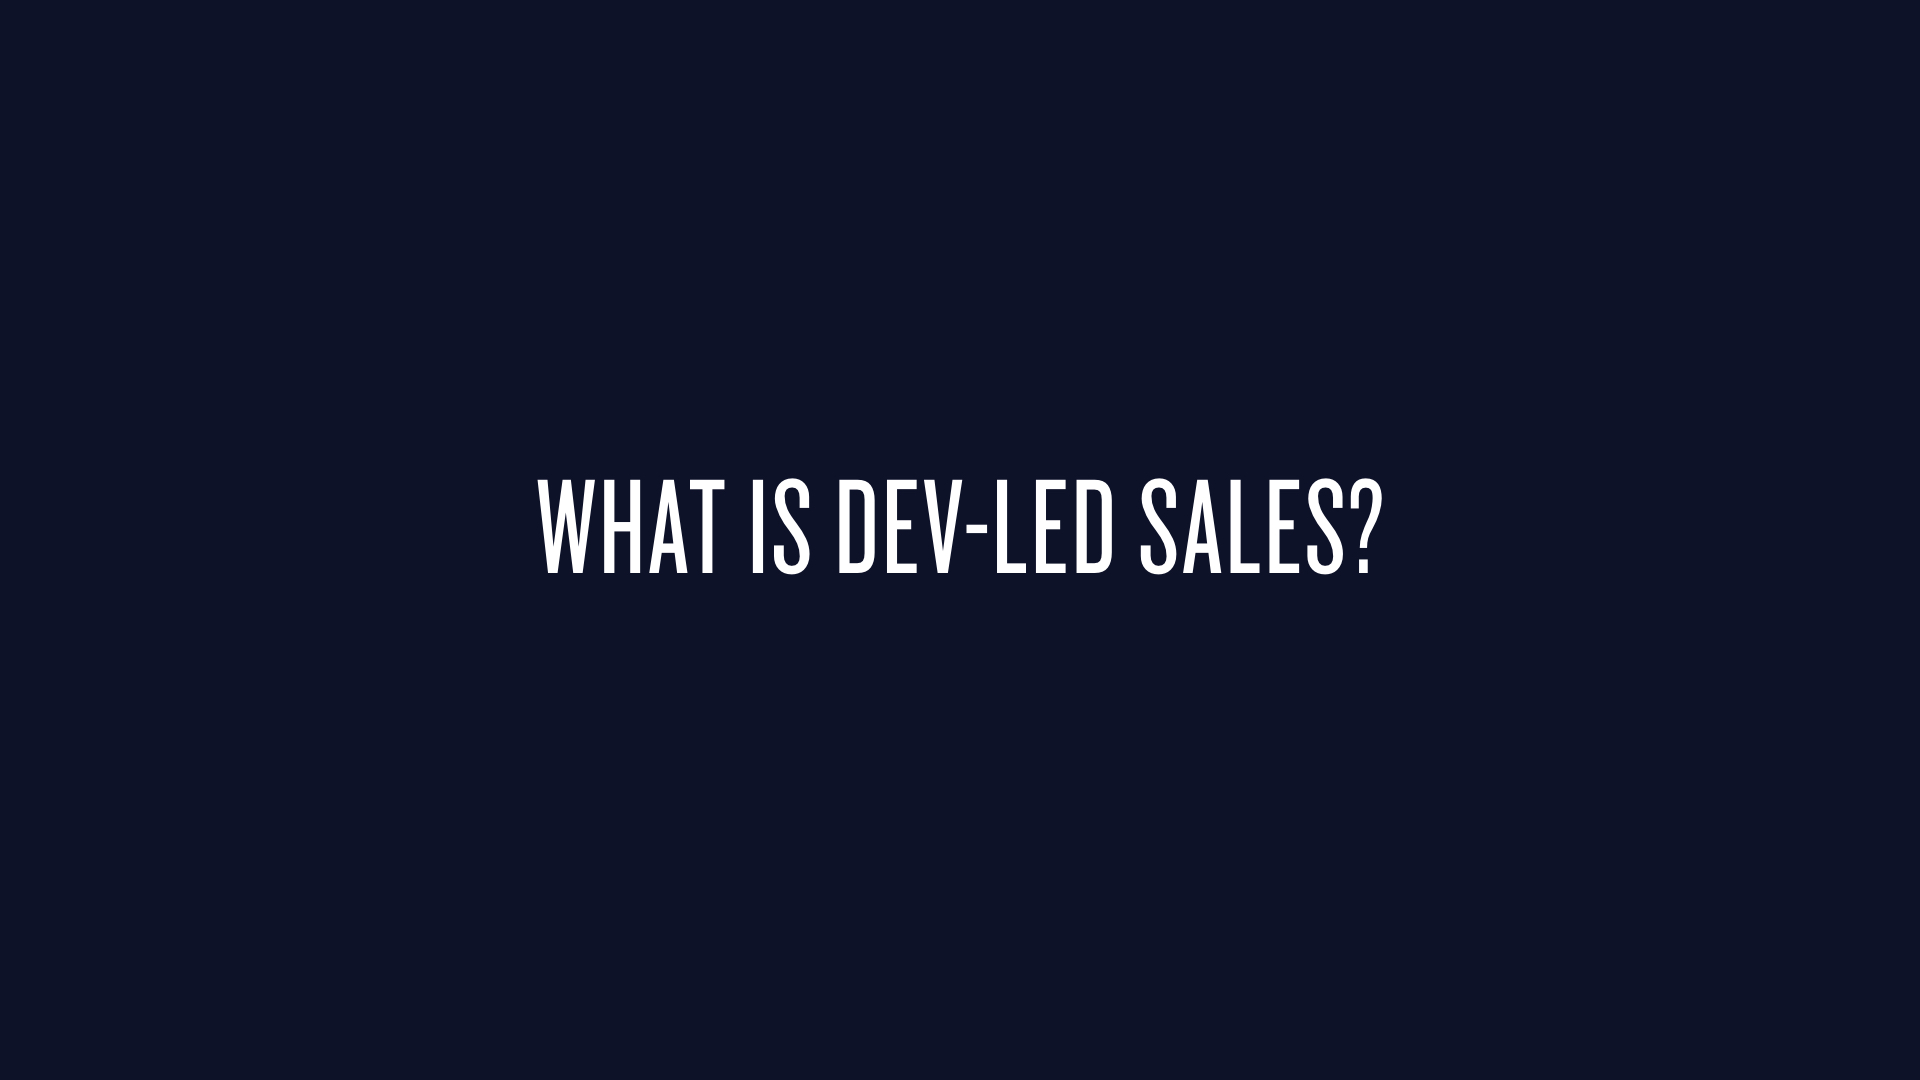 Subsection for what is dev-led sales.